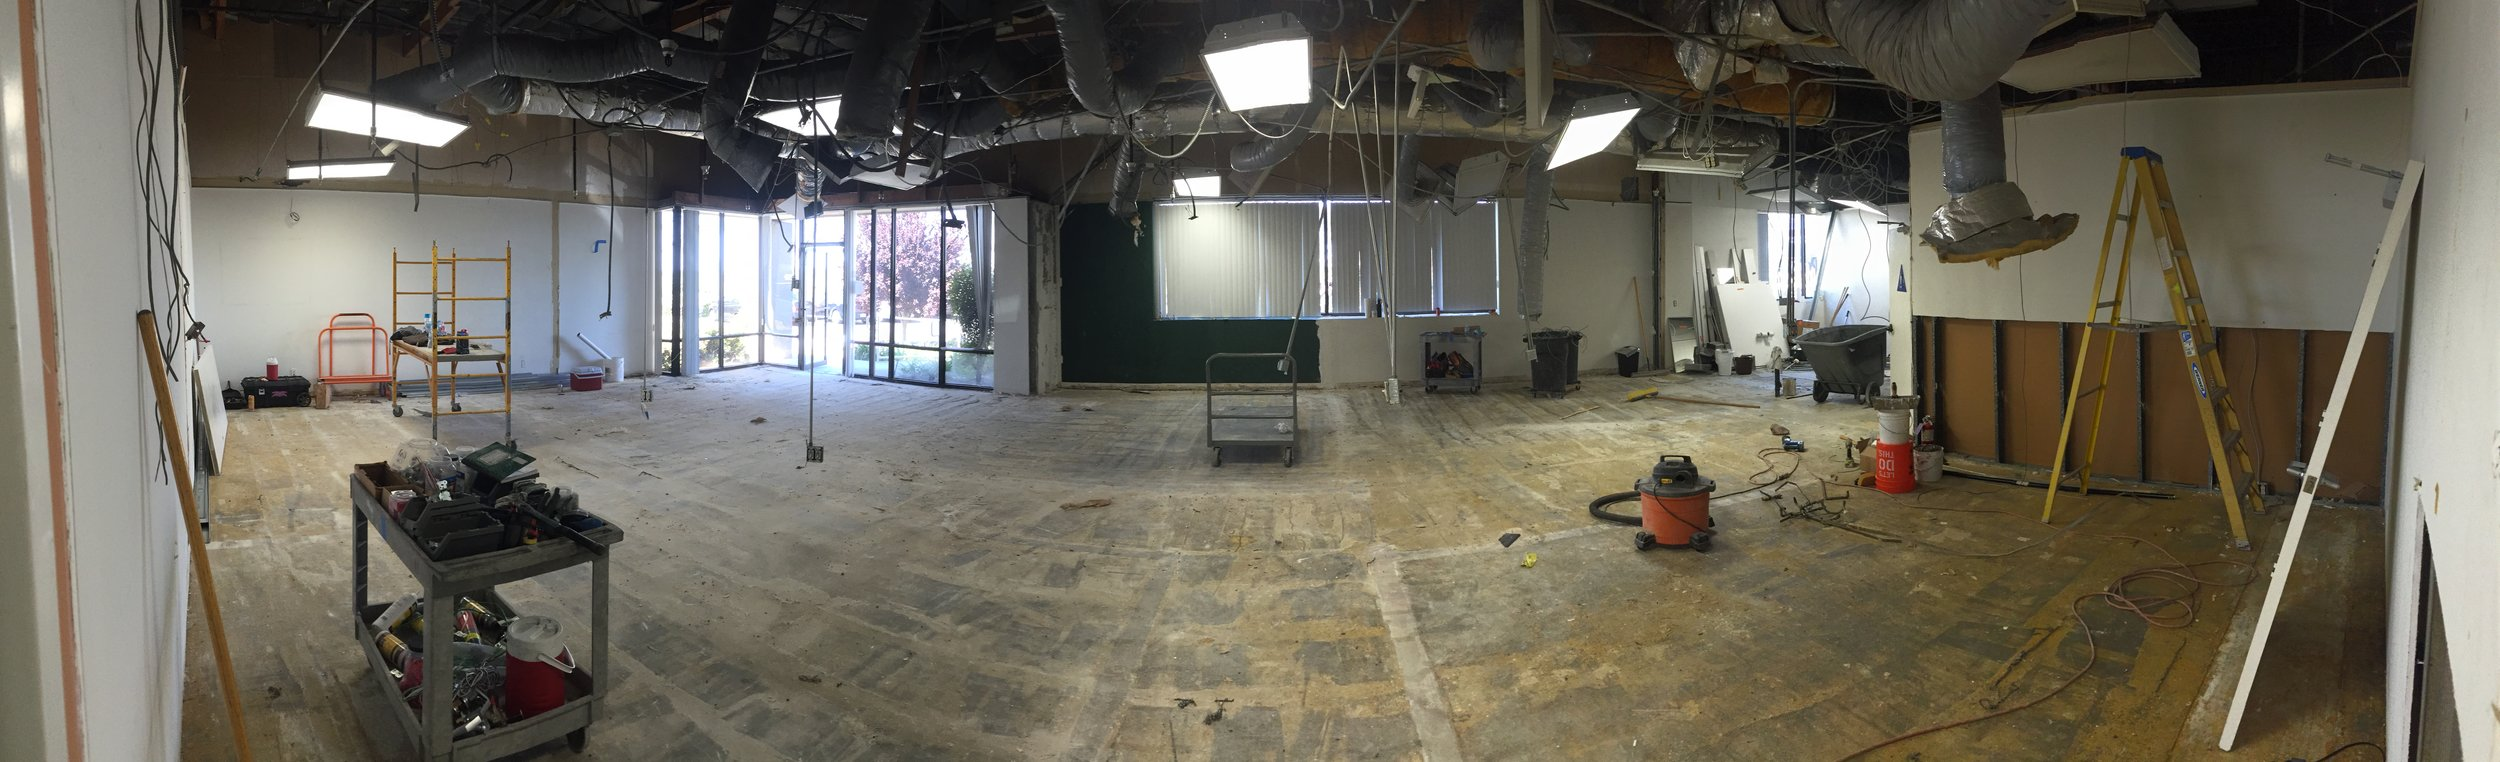 Warehouse and front office expansion at soccerloco HQ from March of 2016